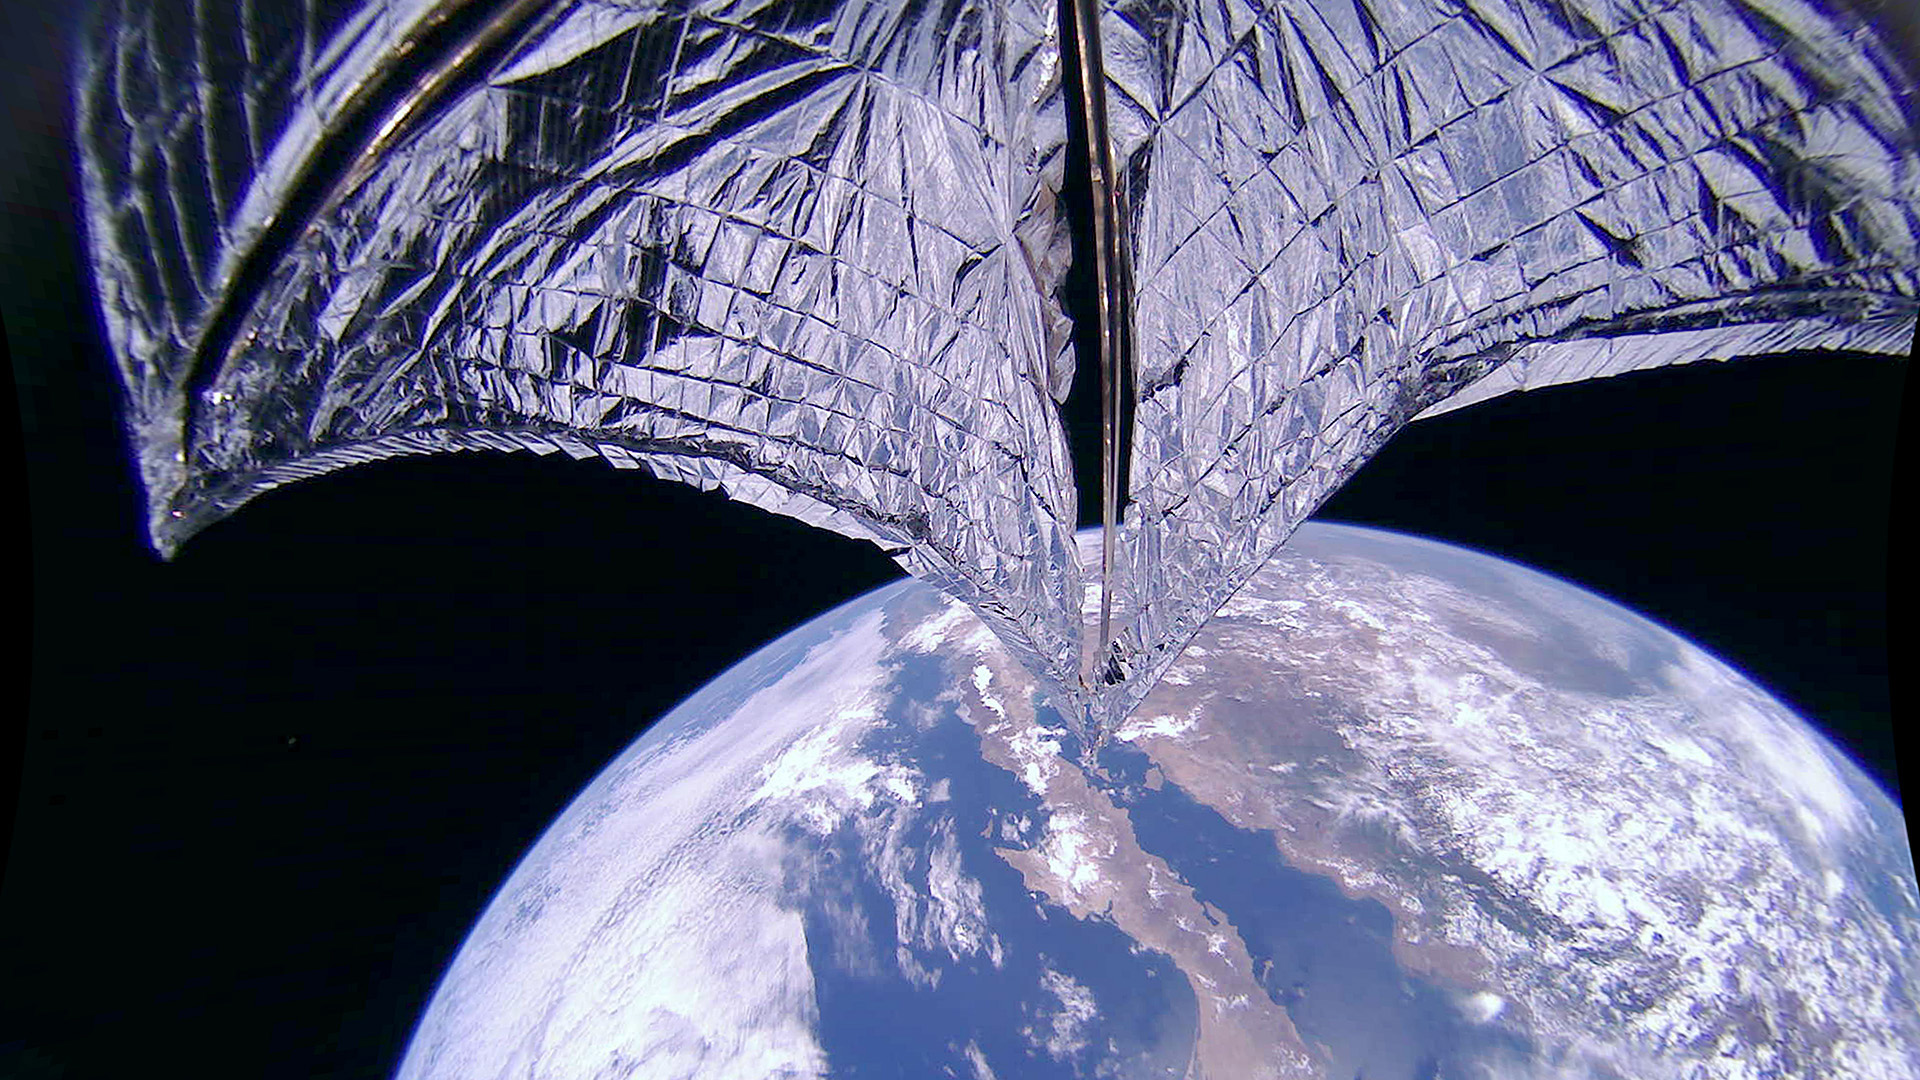 This de-distorted and cold corrected image was taken during the LightSail 2 sail deployment sequence on 23 July 2019 at 11:48 a.m. (Credit: Planetary Society)